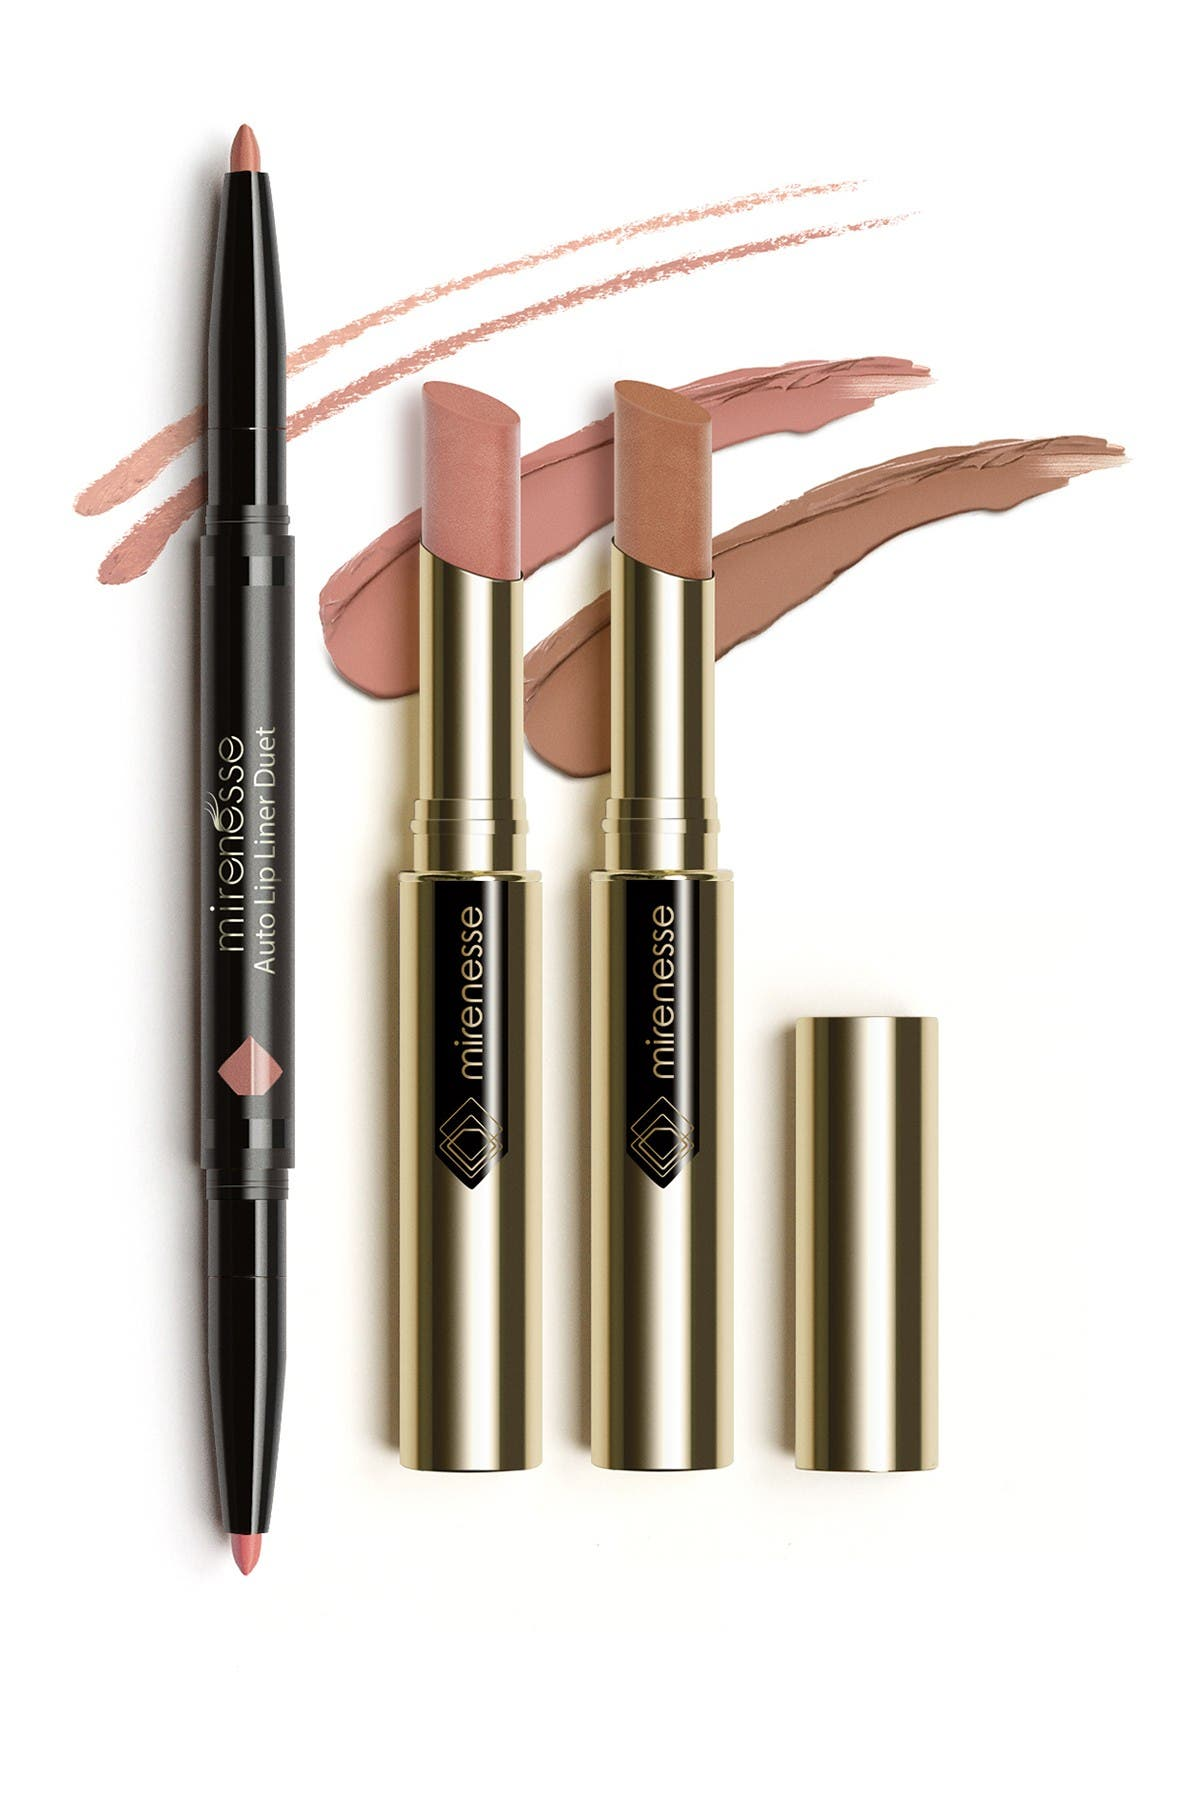 Image of Mirenesse Matte Nude 3-Piece Kiss Lipstick Collection